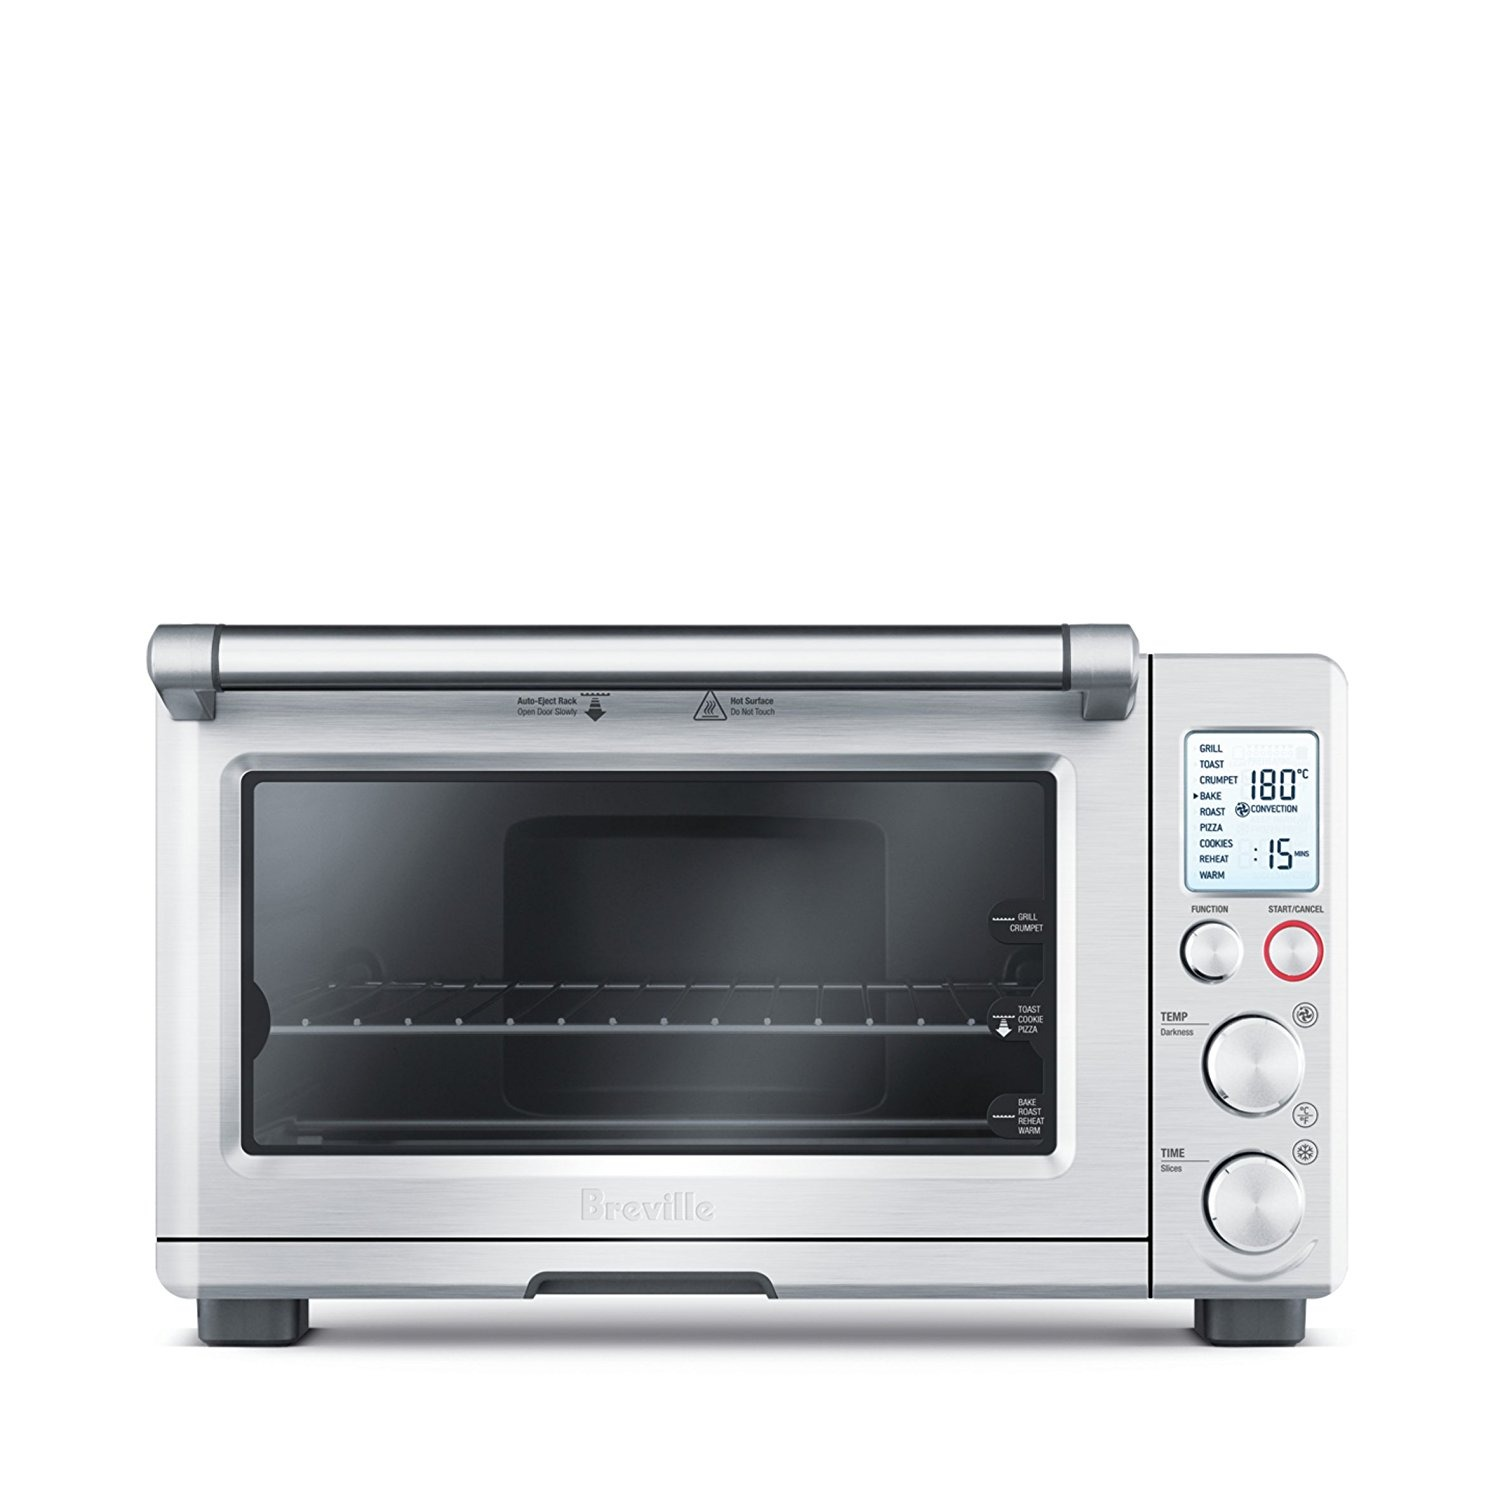 Breville BOV800XL Smart Oven 1800 Watt Convection Toaster Oven with Element IQ